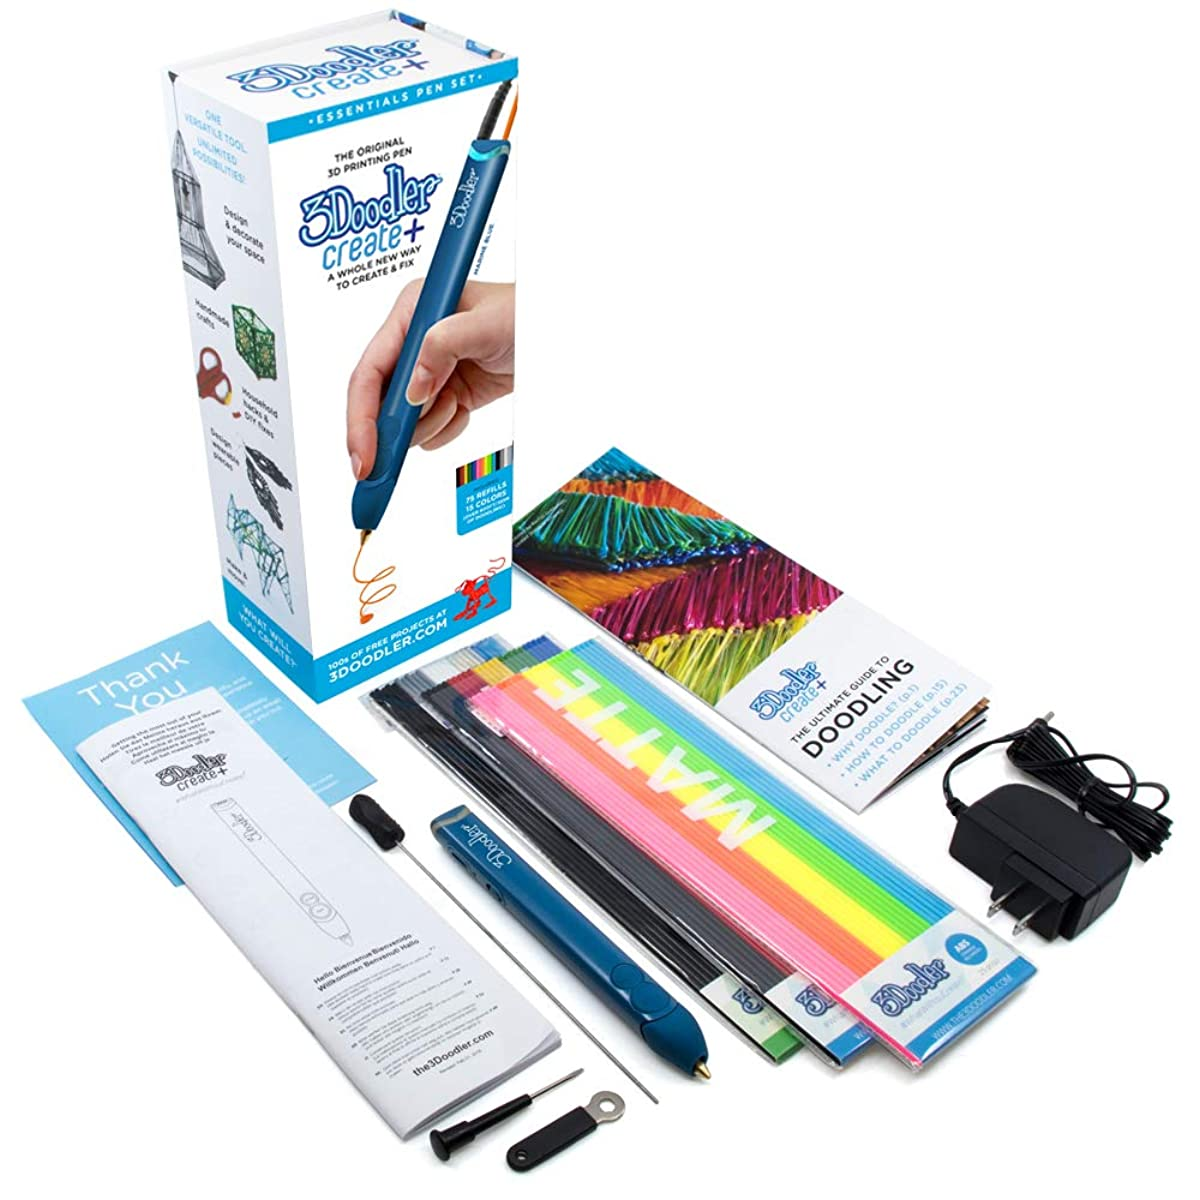 3D Pen with Free Filament Refills - 3Doodler Create+(2019 Version) 3D Doodler Art Drawing Printing Pen Kit with 15 Colors Plastic Free Stencil Activity Book for Adults Fun Arts Craft DIY Model Repair